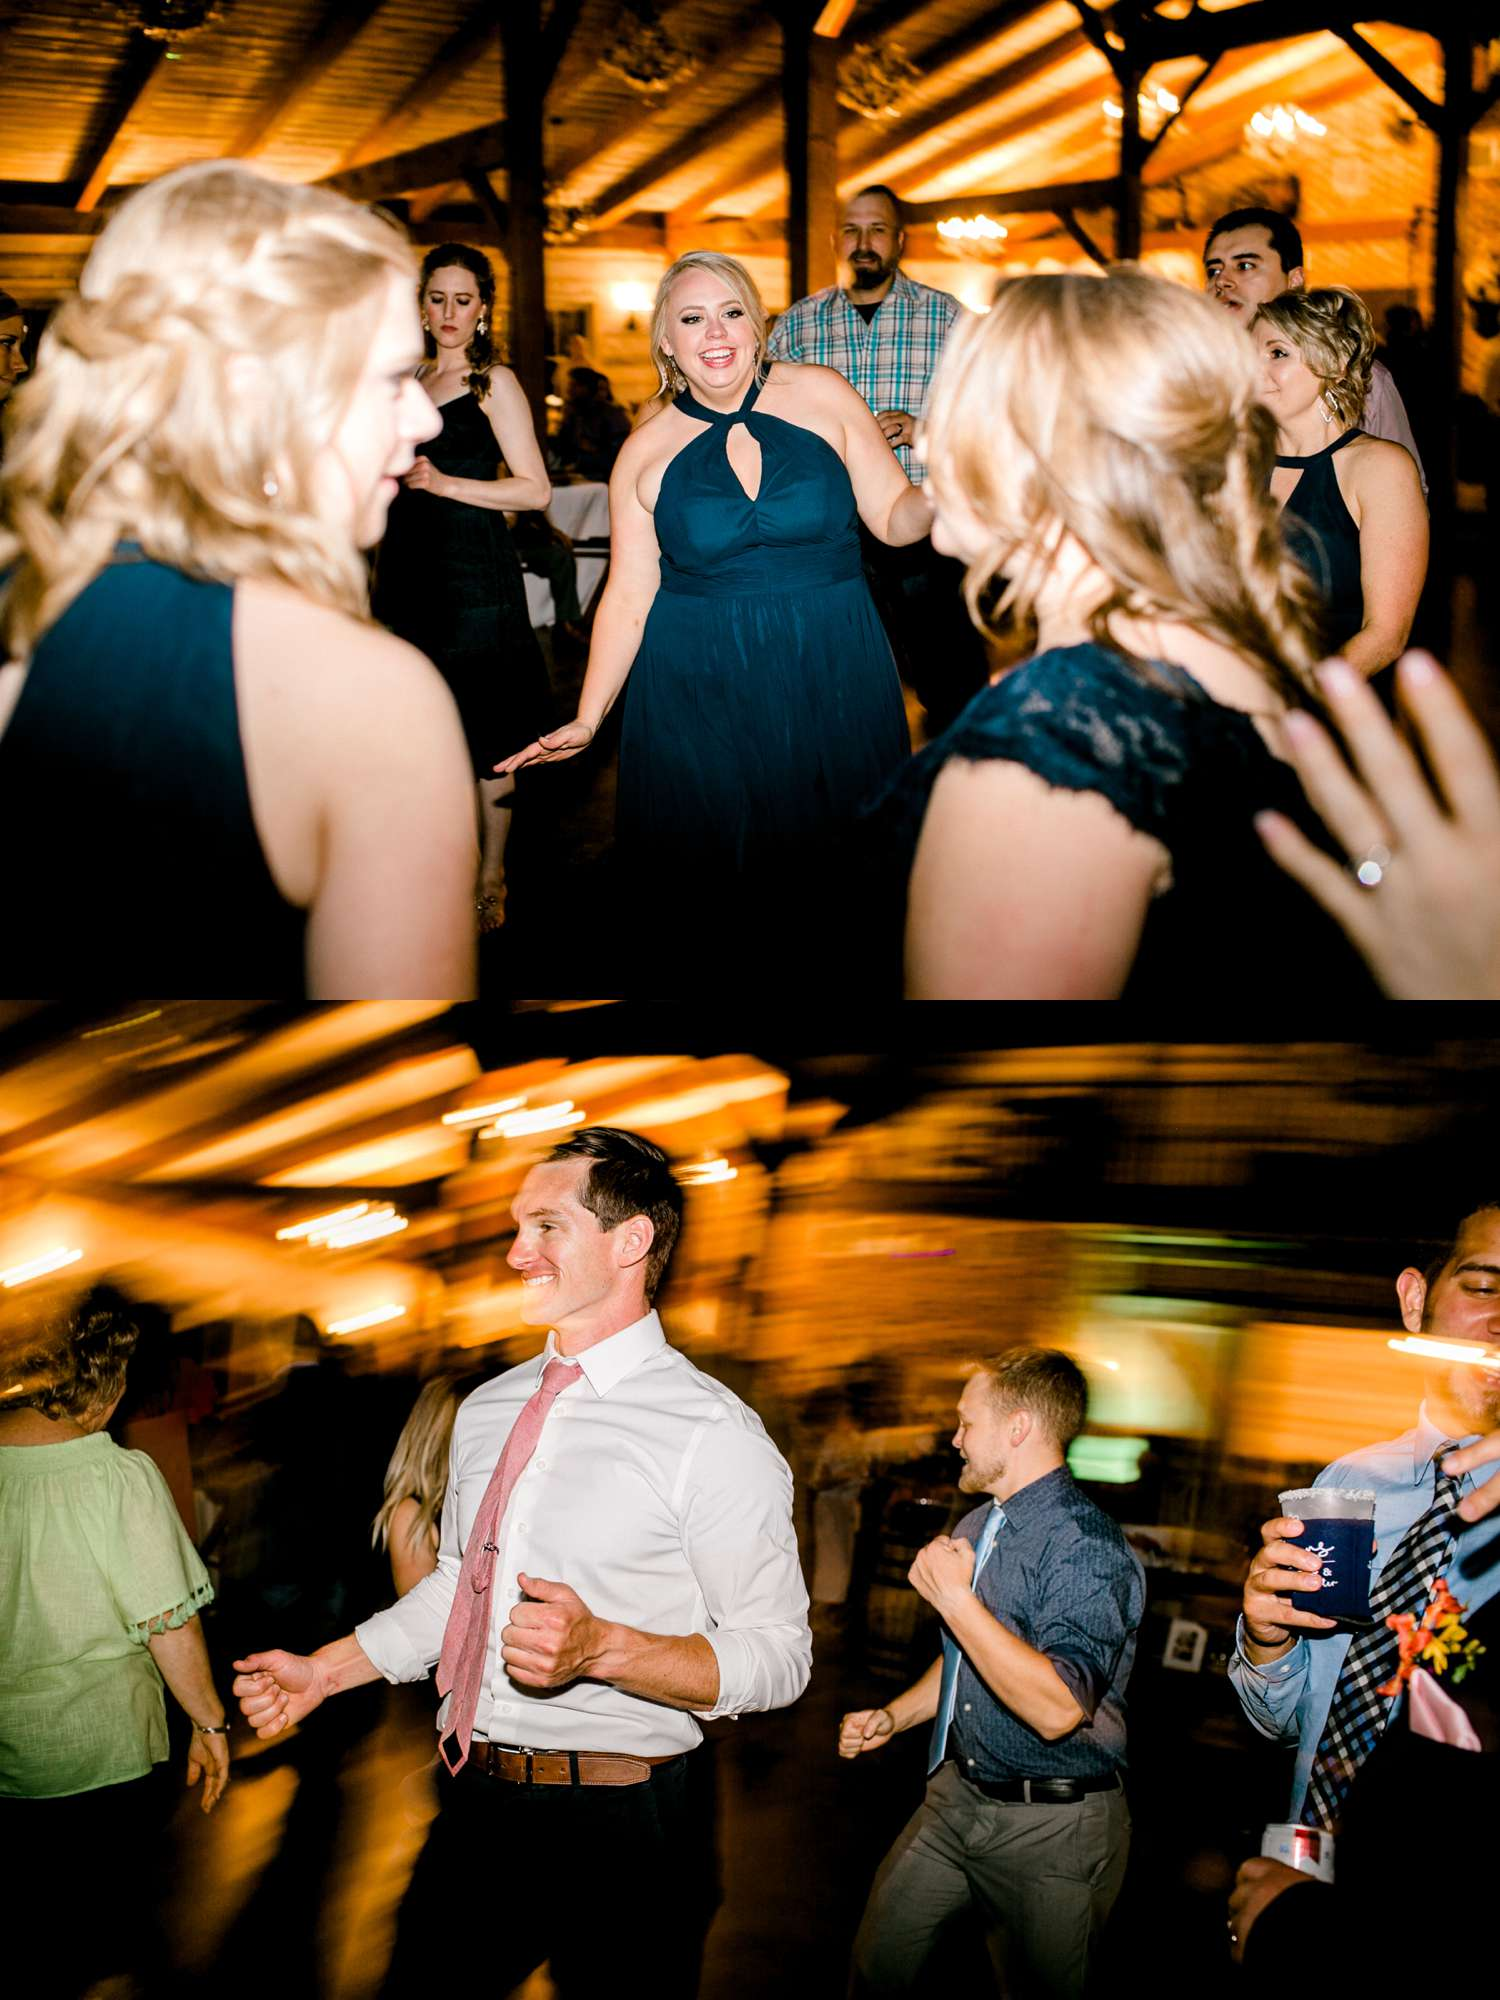 TIMMI+JORDAN_IRVINE_EBERLEY_BROOKS_EVENTS_ALLEEJ_WEDDINGS_0154.jpg